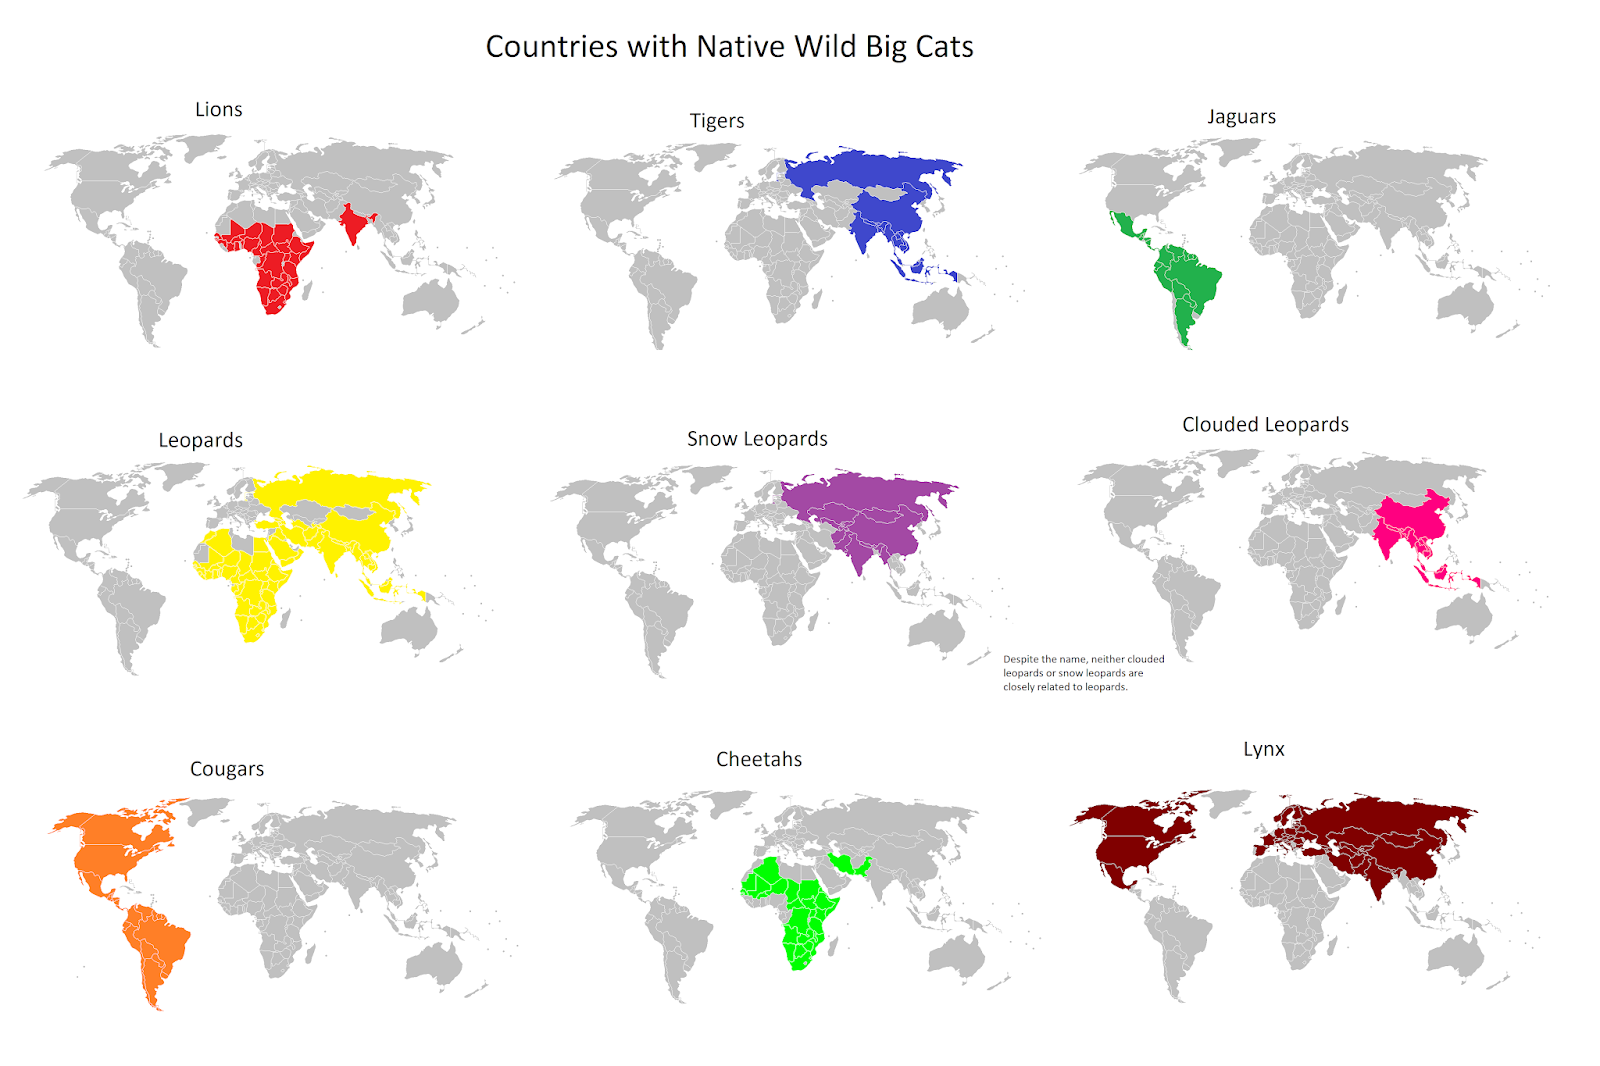 Countries with Native Wild Big Cats